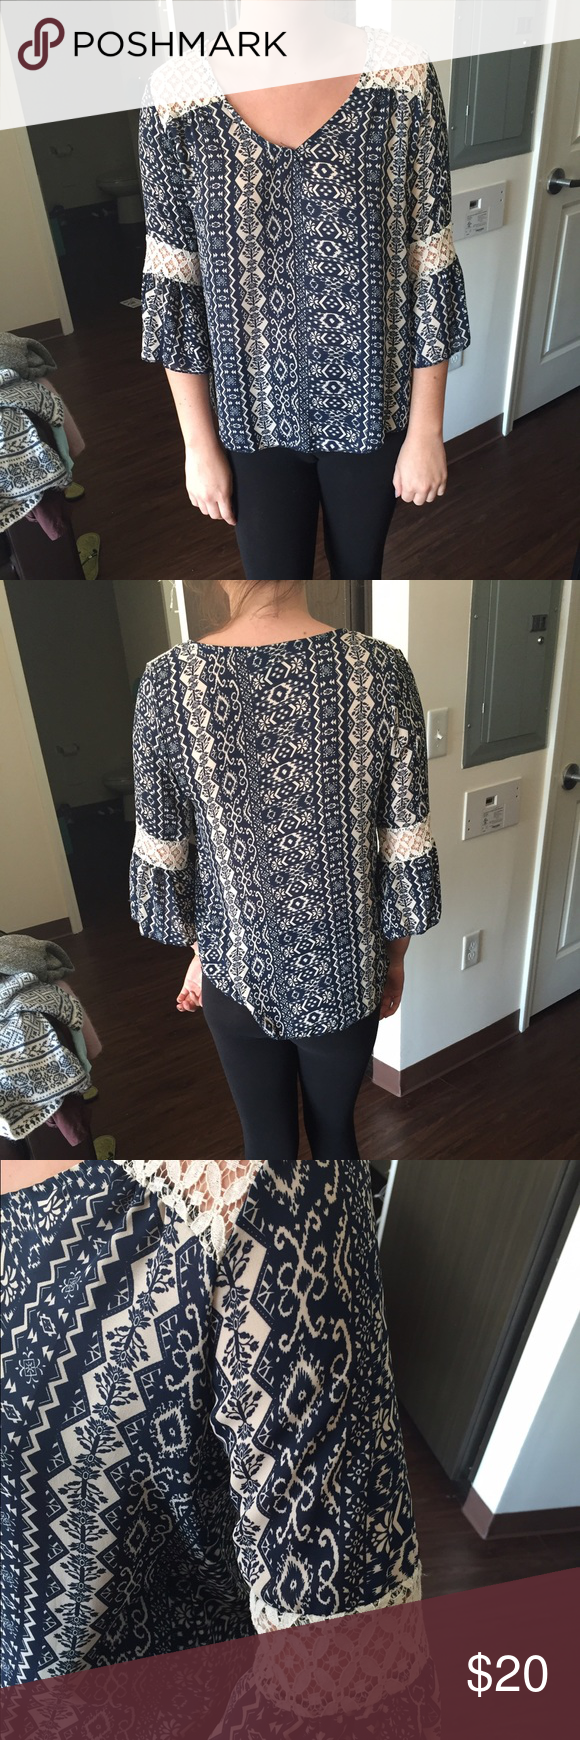 NWOT Chiffon lace top NWOT Blue and white print chiffon top with lace detailing on the sleeves and neck! Great piece for fall! Tops Blouses